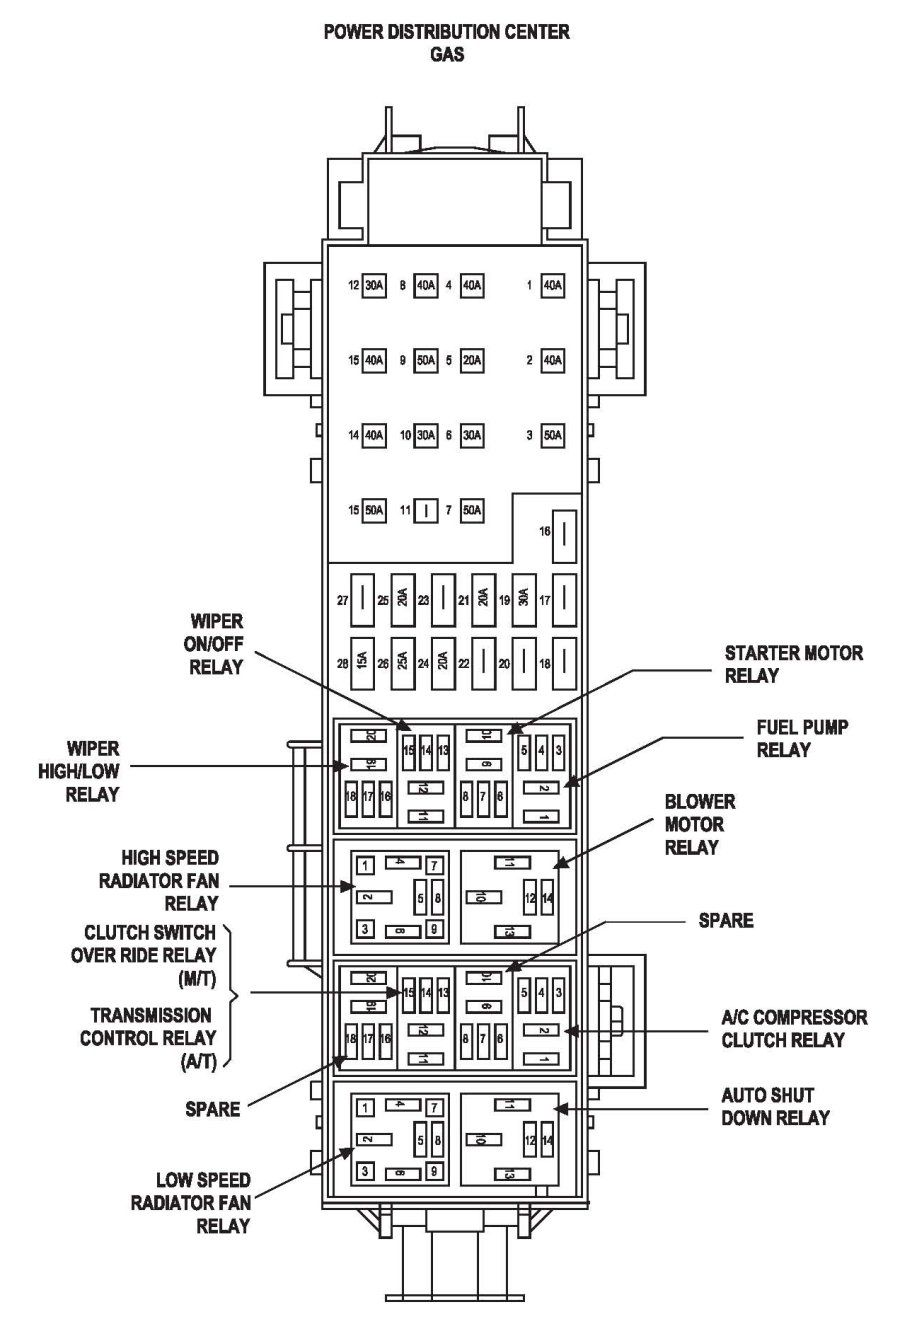 jeep liberty fuse box diagram image details [ 900 x 1336 Pixel ]